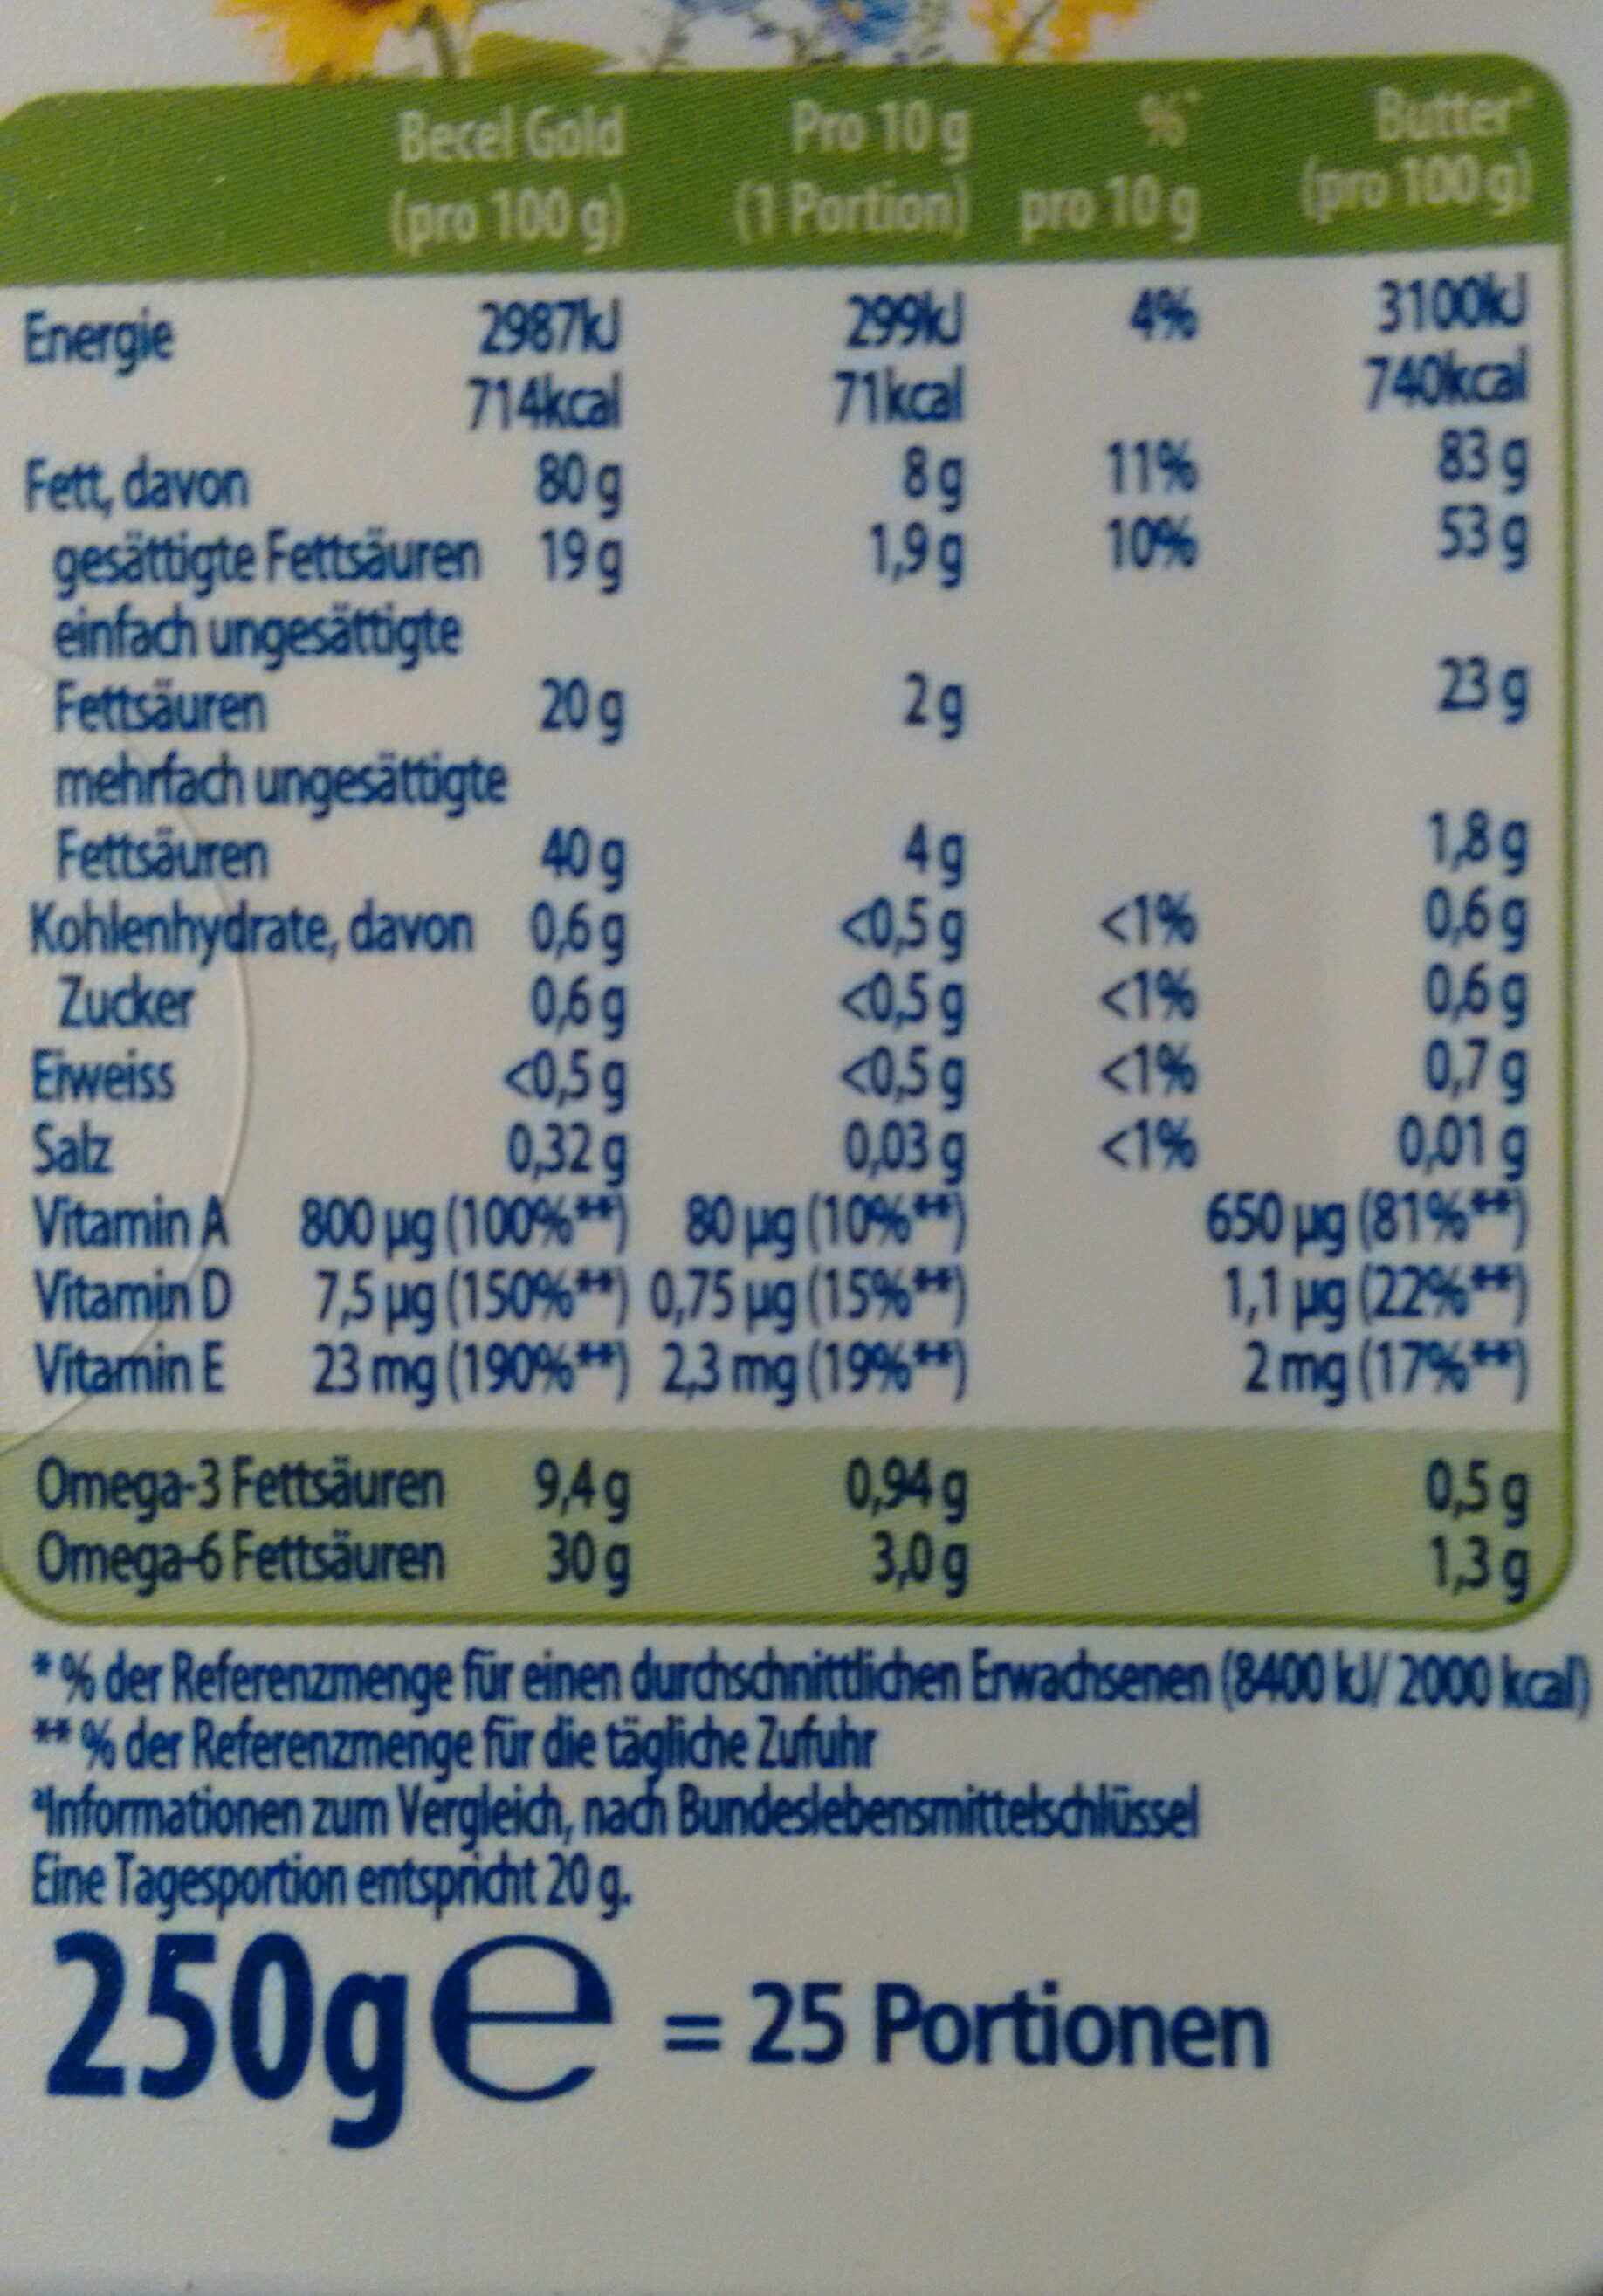 Becel Gold - Nutrition facts